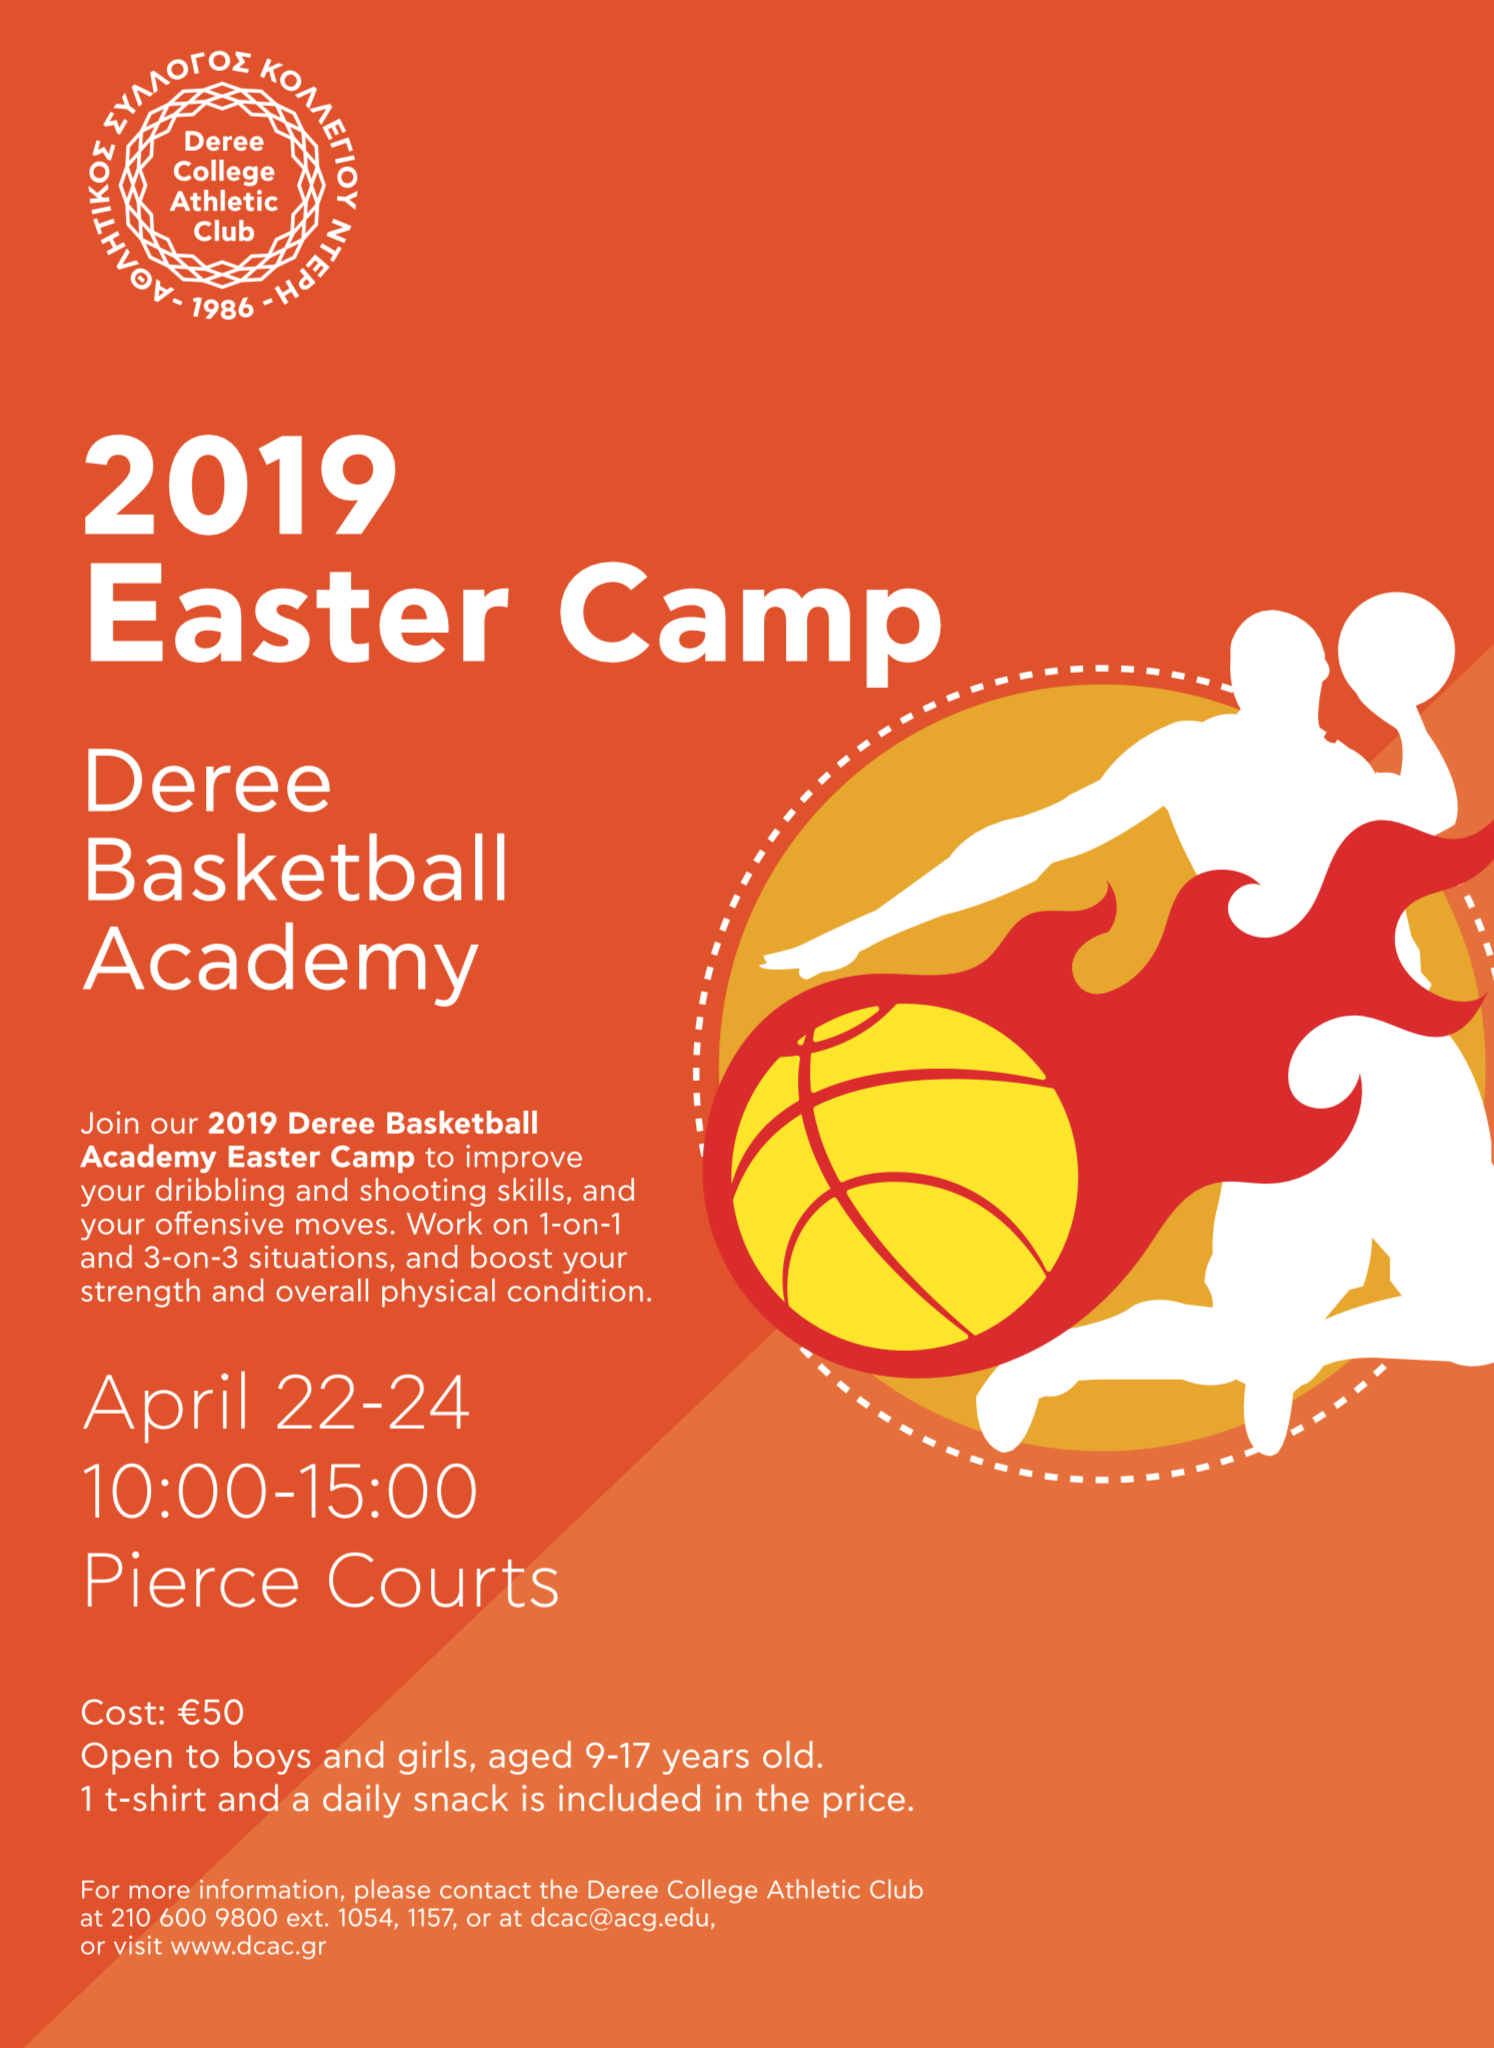 2019 DBA Easter Camp